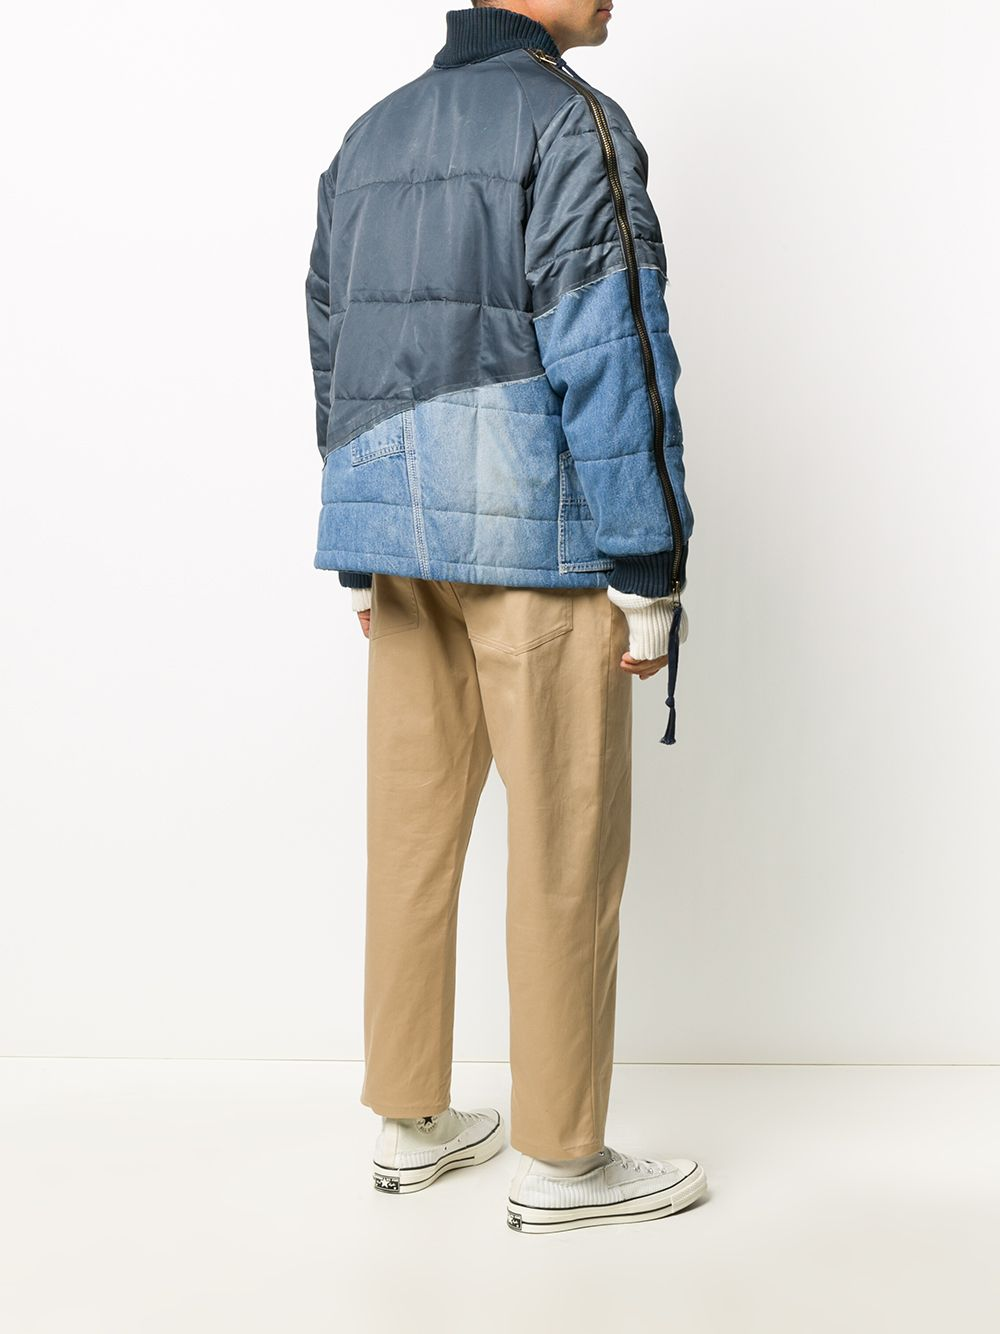 GREG LAUREN MEN WASHED SATIN 50/50 RETRO PUFFY KIMONO AIR FORCE JACKET